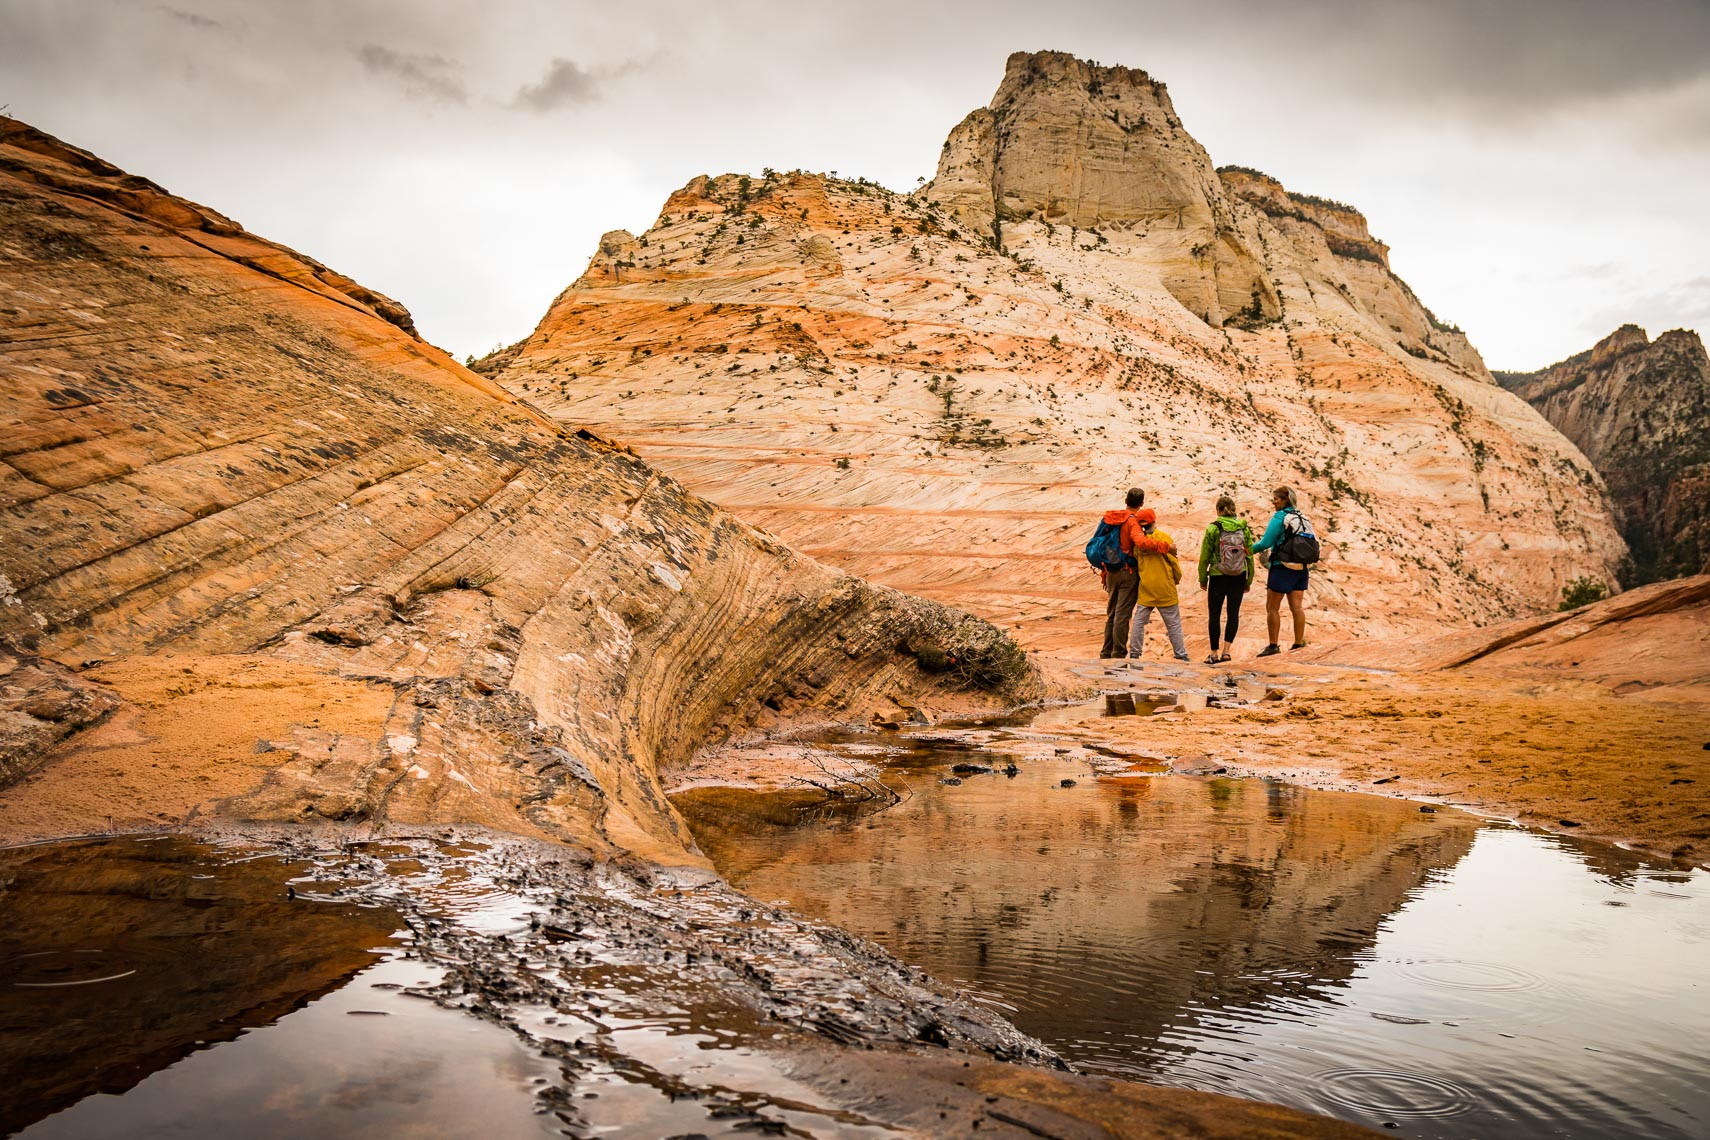 Family Zion Reflection Utah Adventure | Michael DeYoung